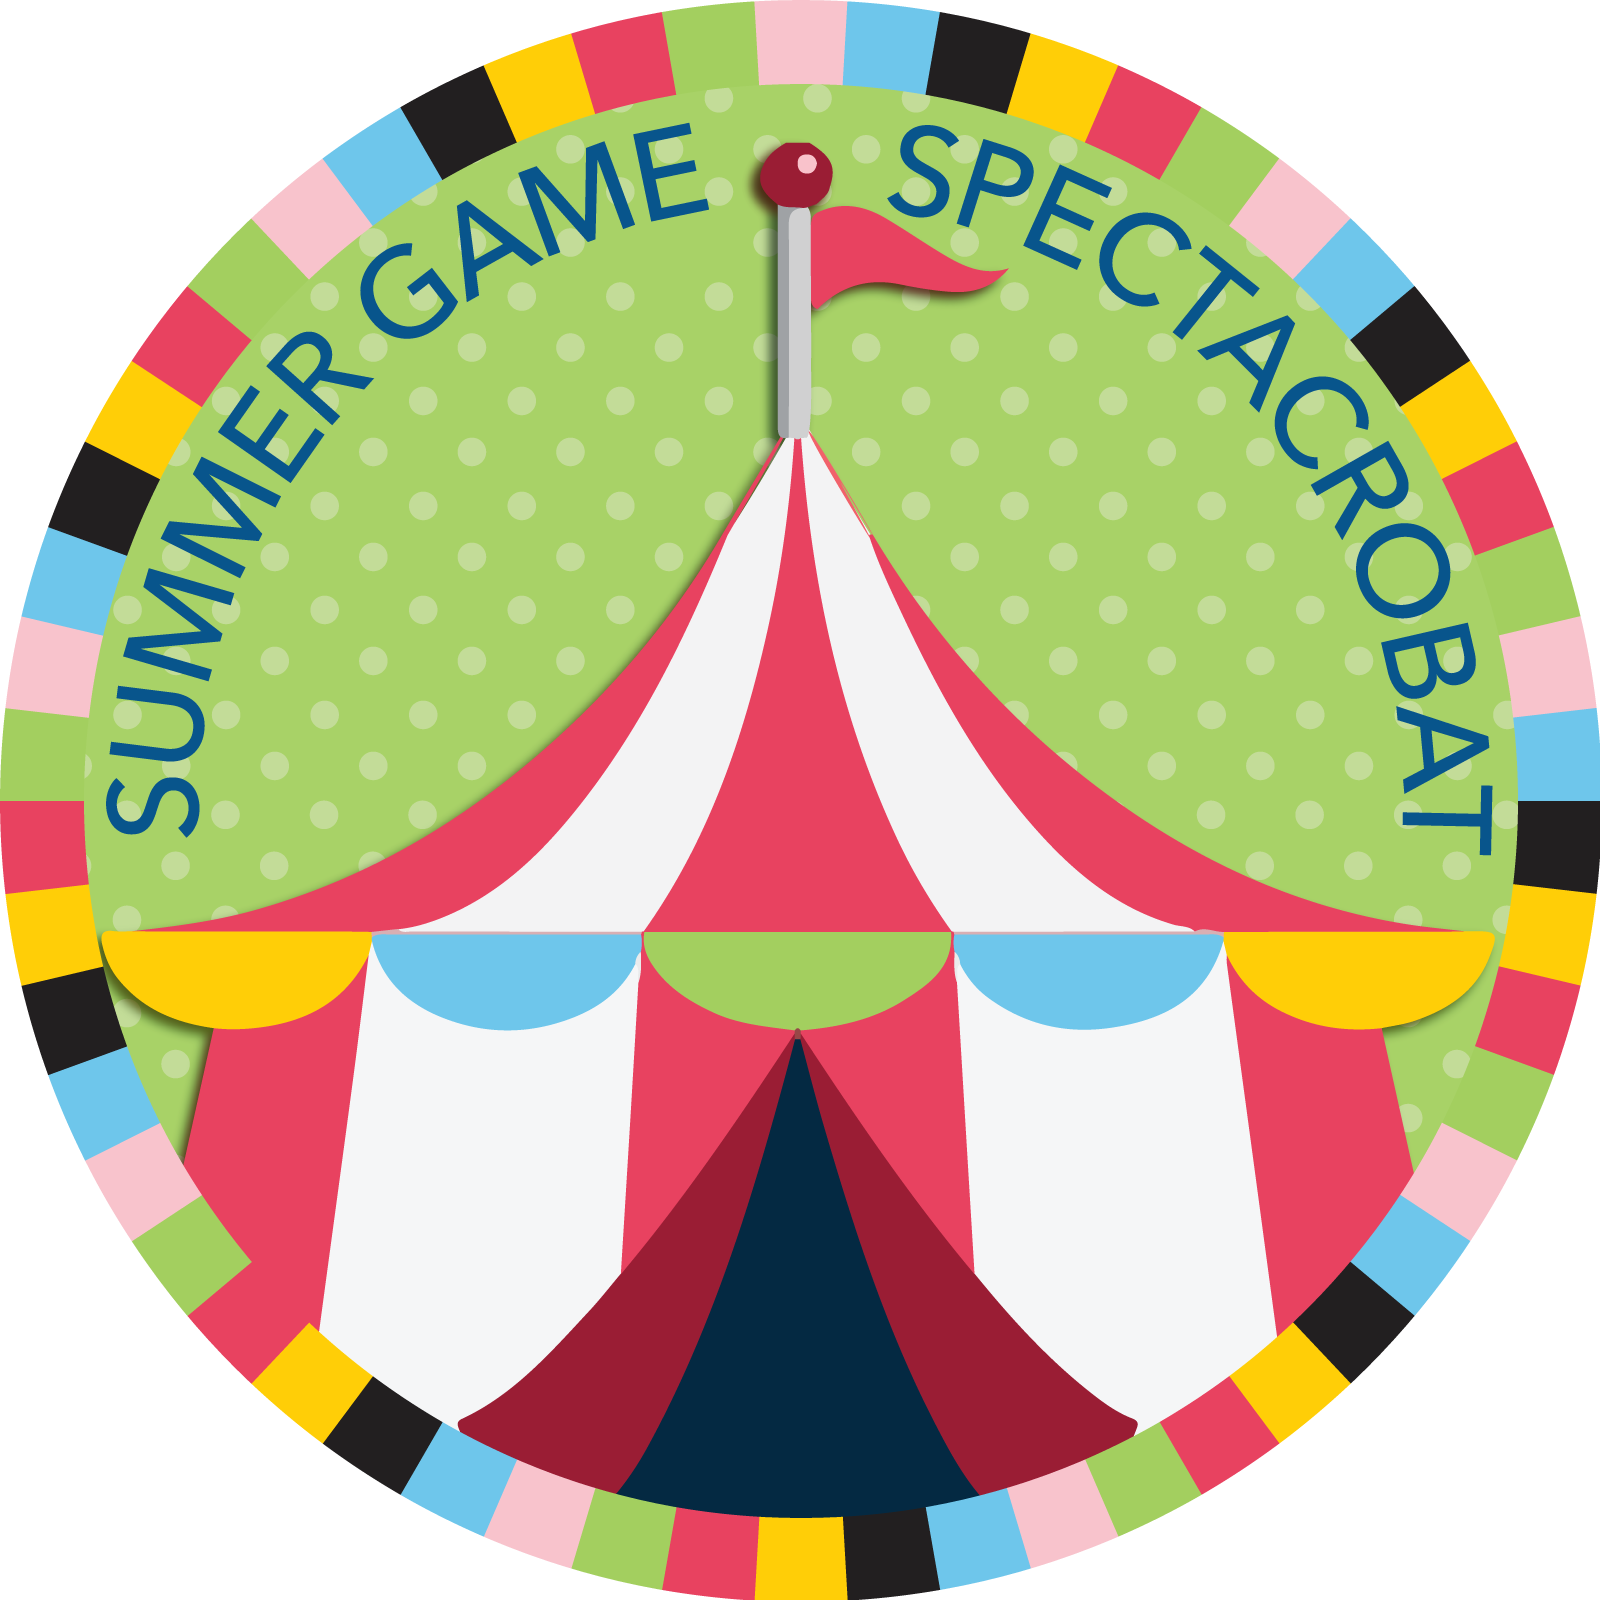 Summer Game Spectacrobat badge image